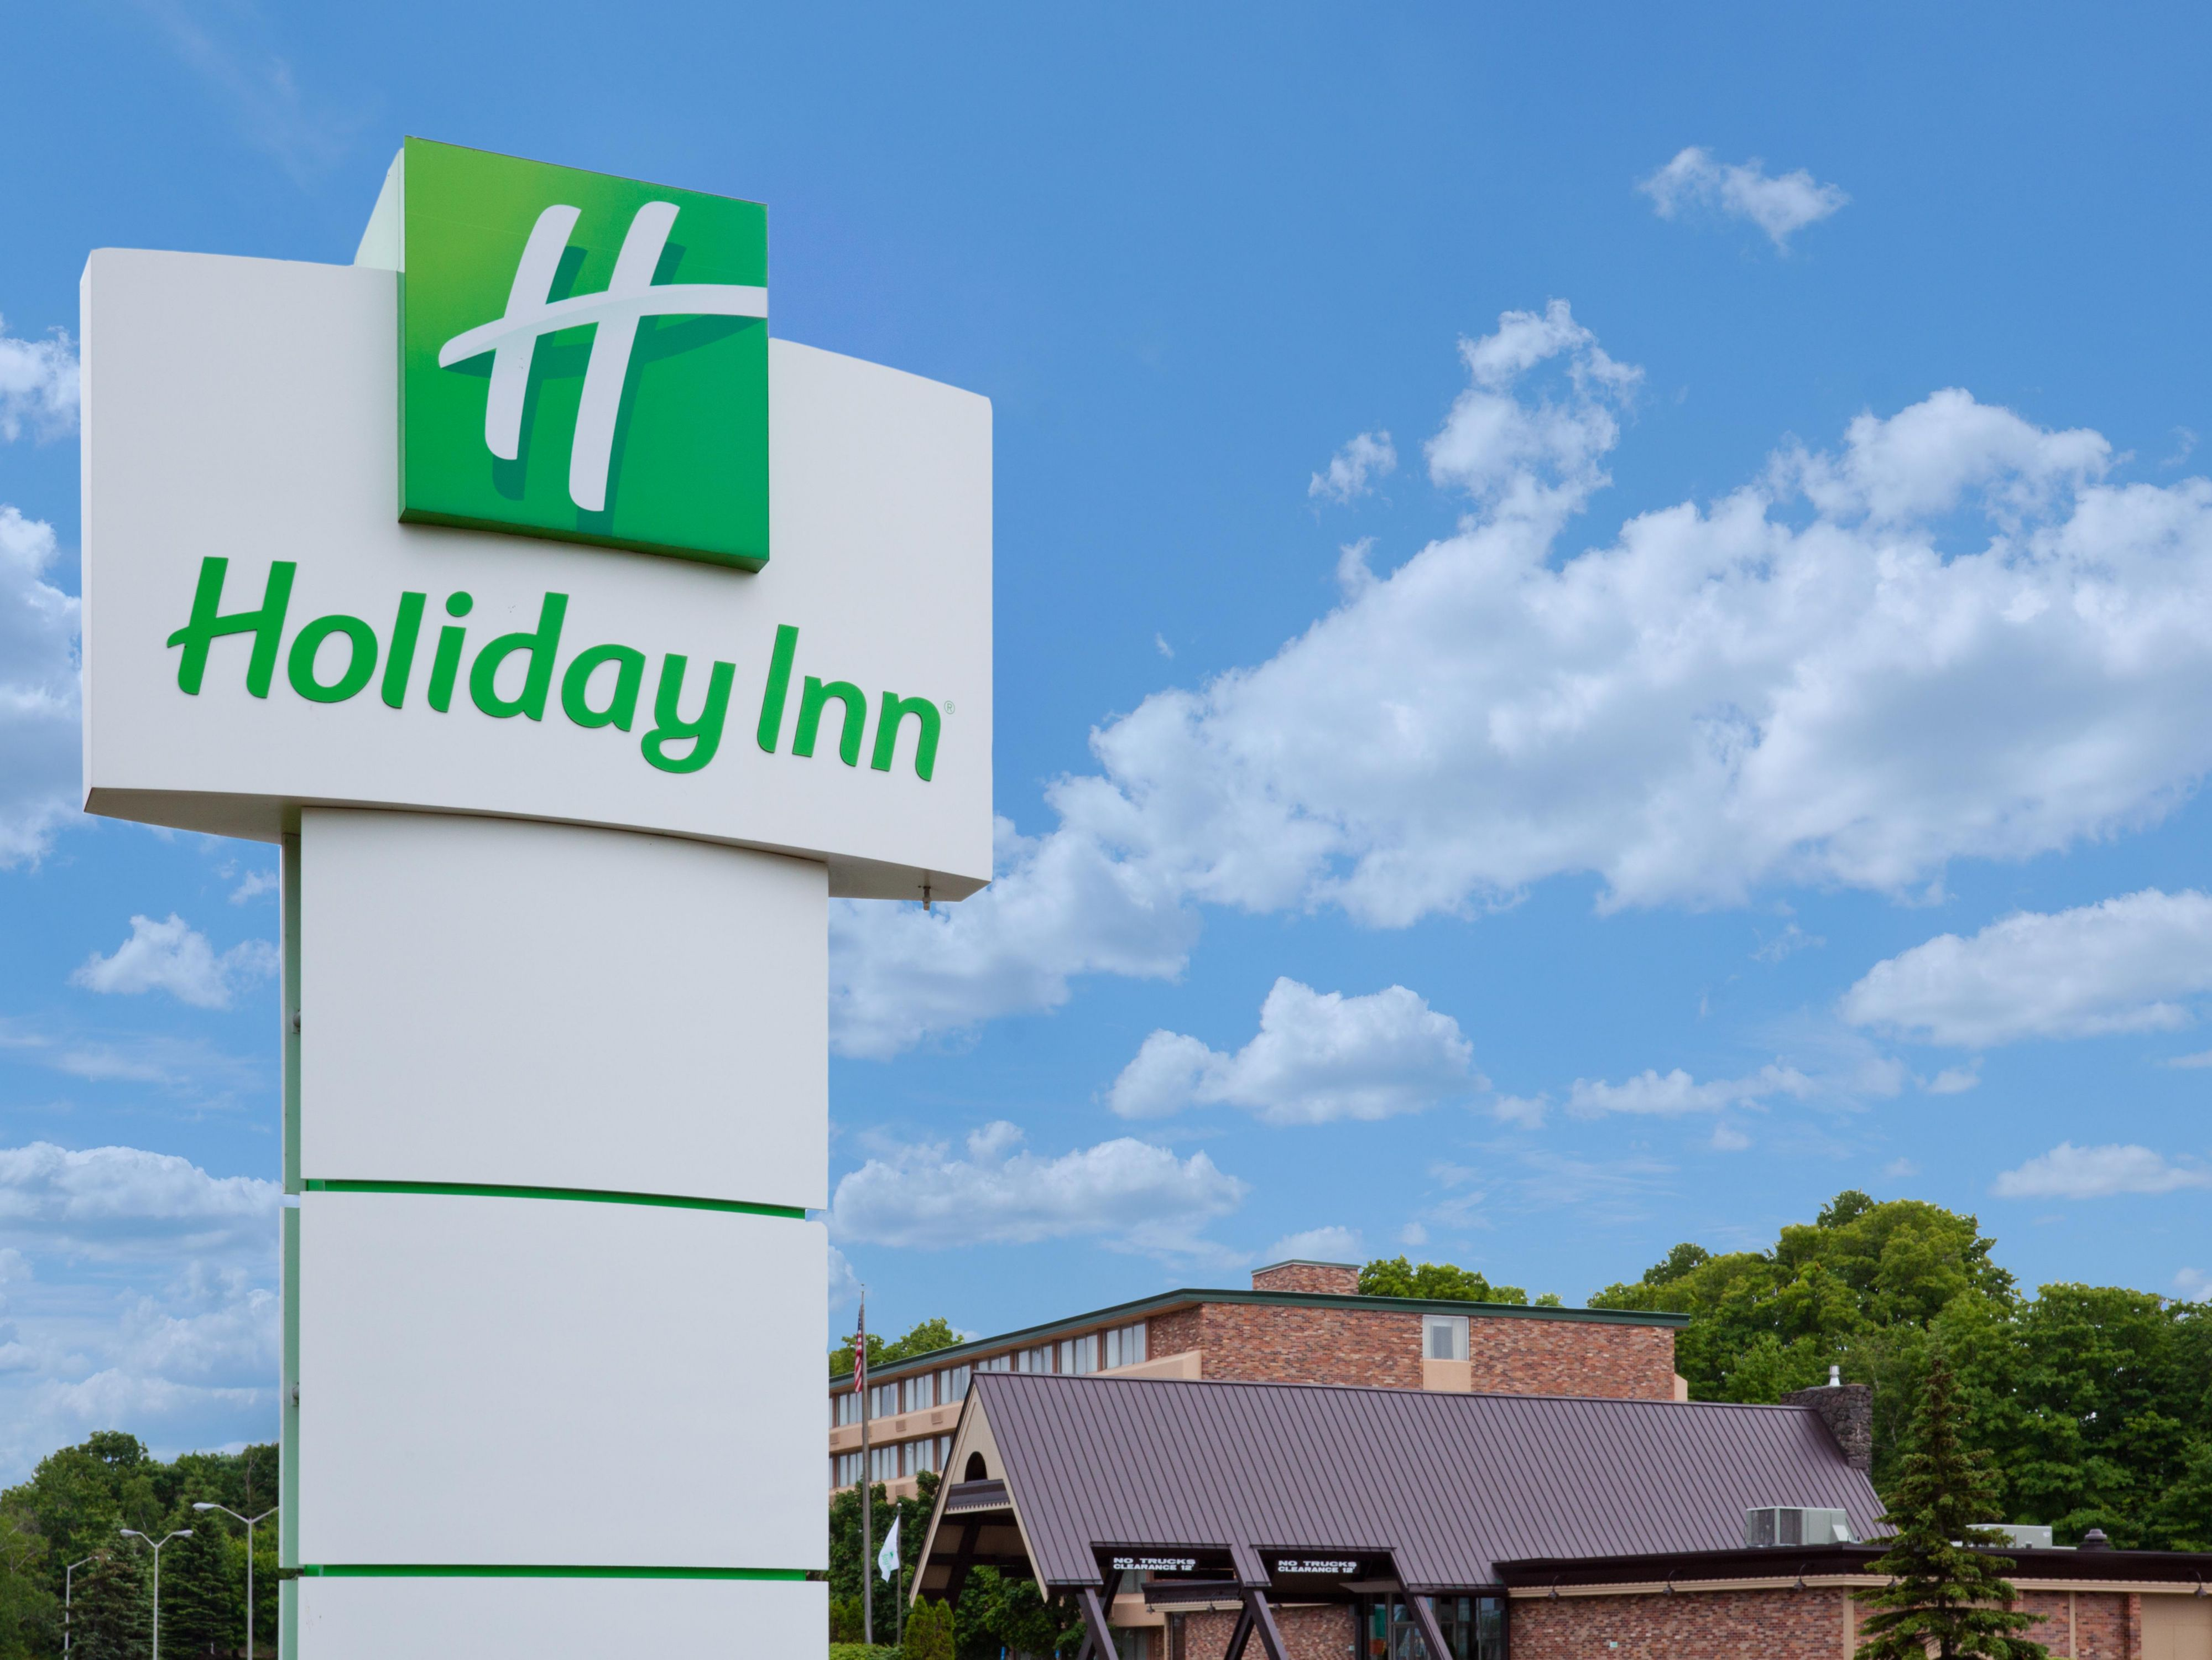 Welcome to the Holiday Inn of Marquette